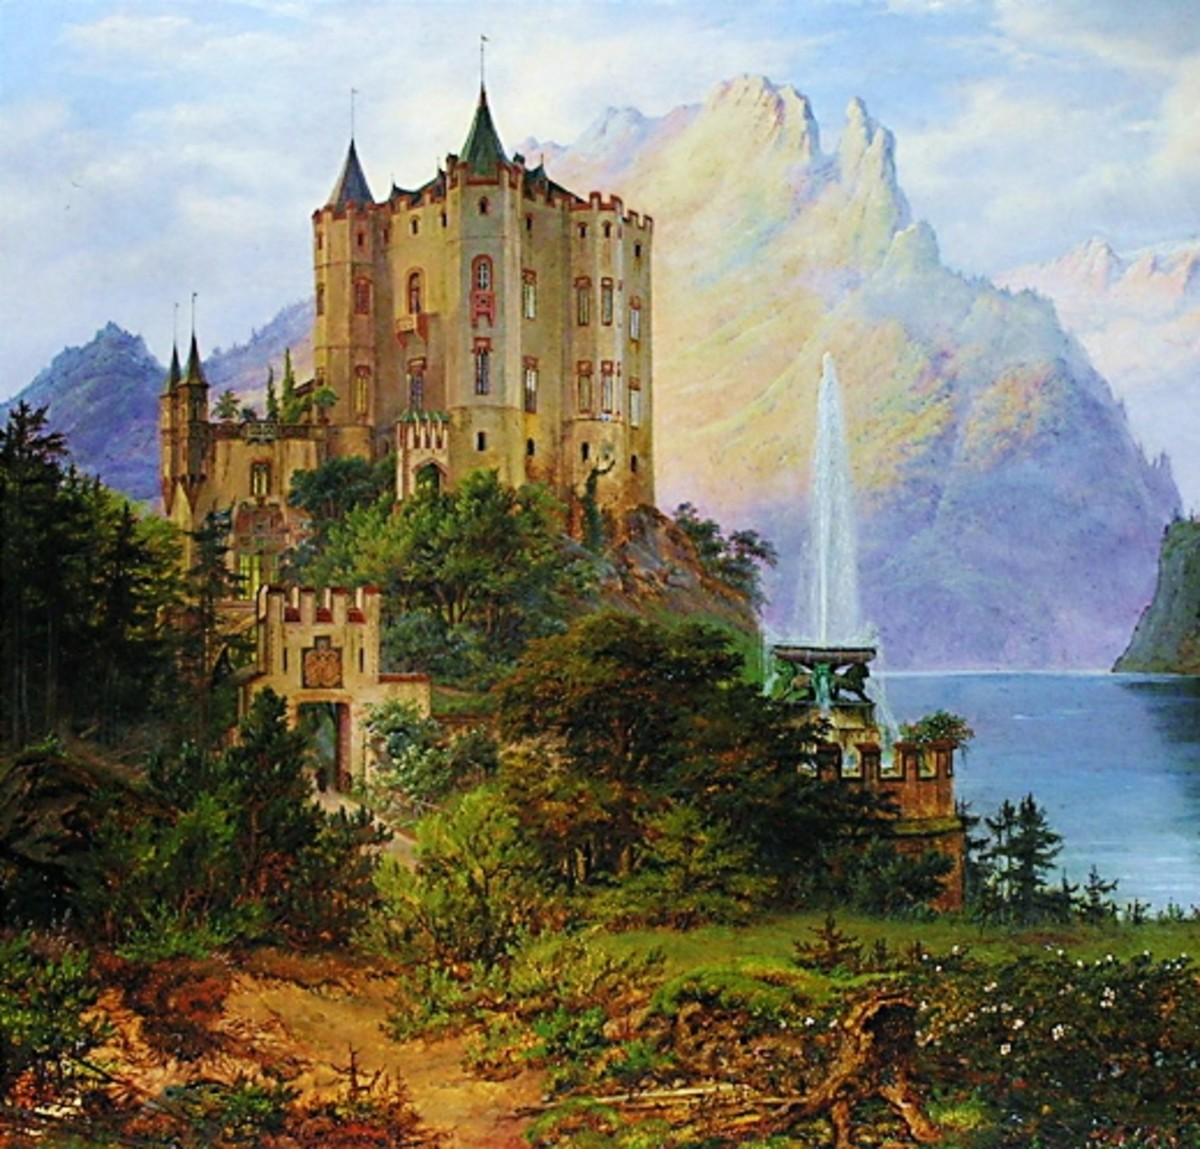 Hohenschwangau, built by Ludwig II's father, Maximilian II. Painted in 1843 by Frederik Hansen Sødring.